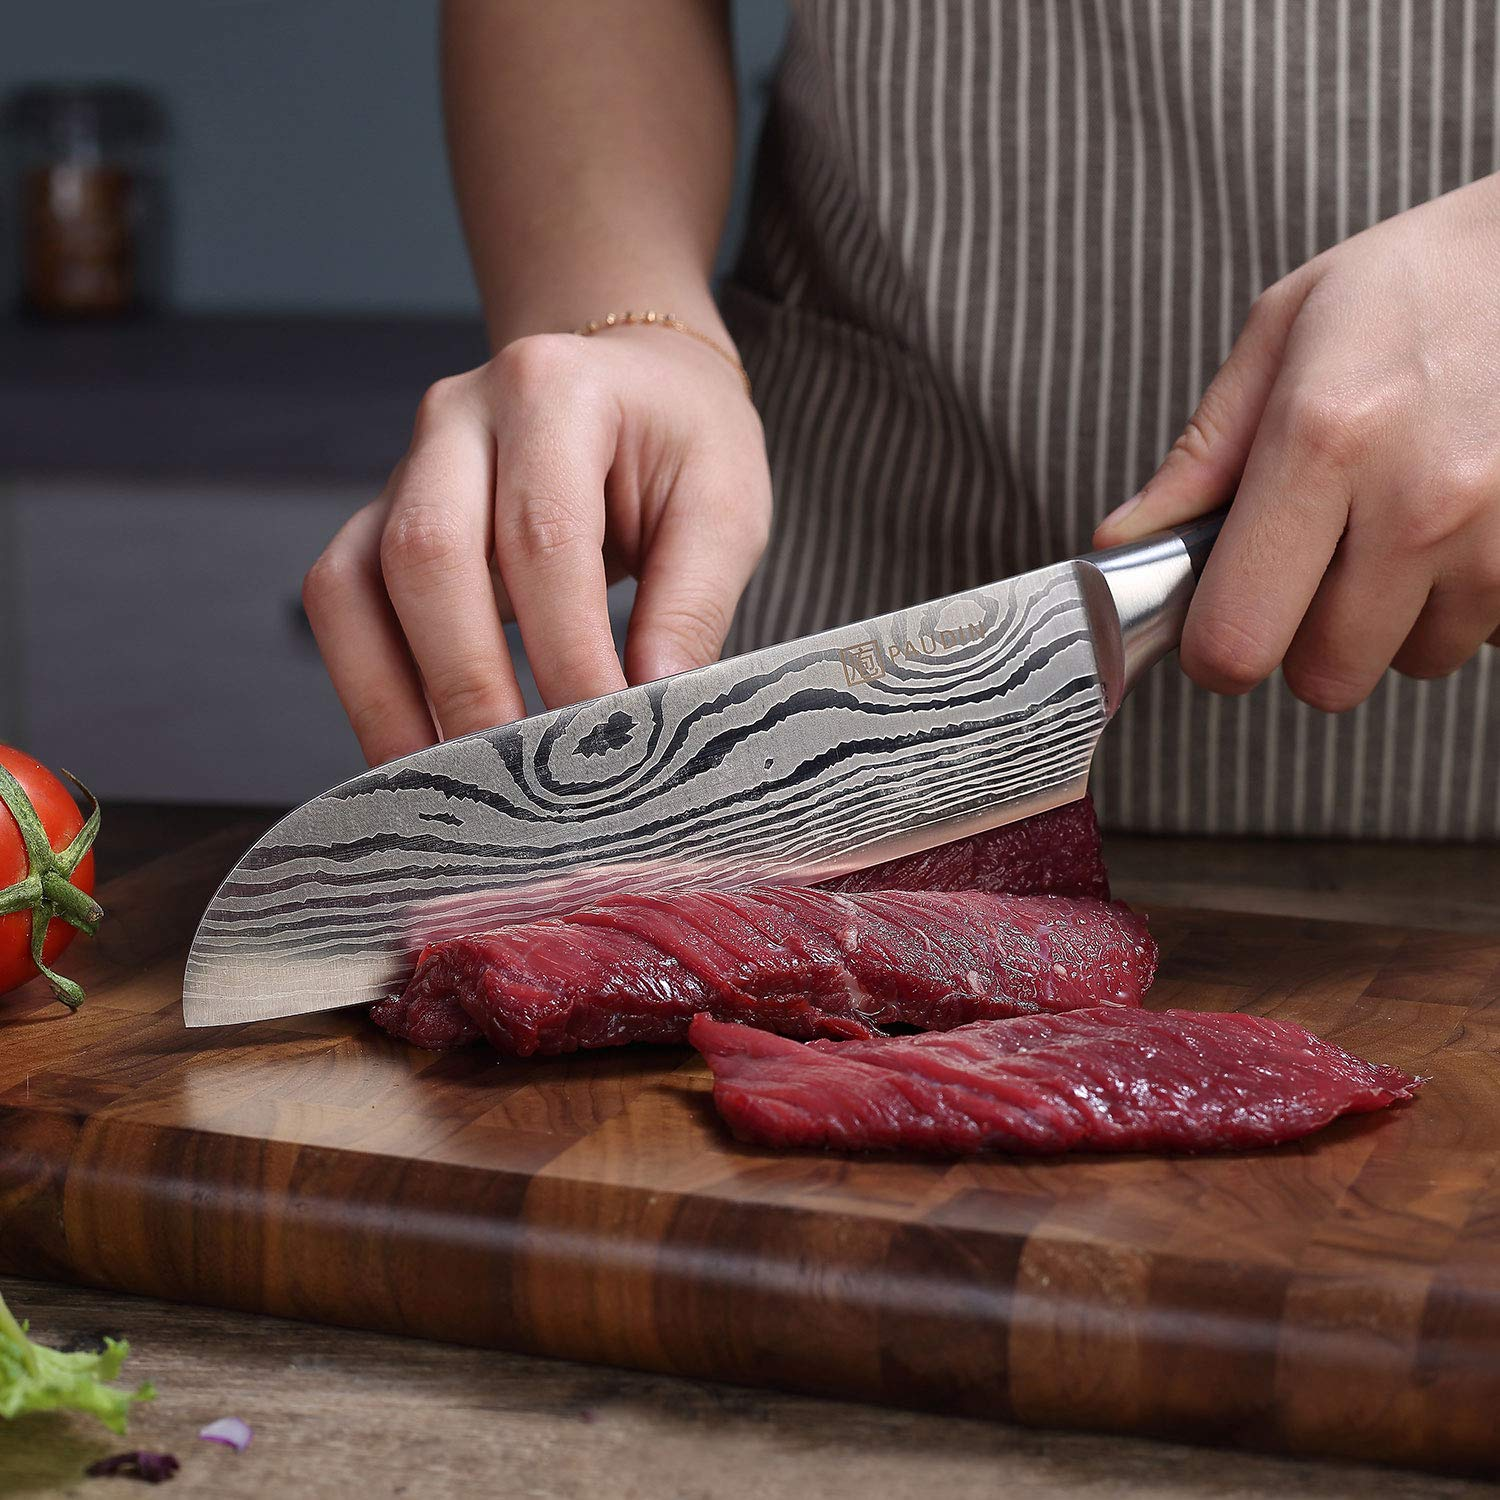 PAUDIN Classic 7 inch Hollow Ground Santoku Knife, German High Carbon Stainless Steel Kitchen Knife by PAUDIN (Image #3)